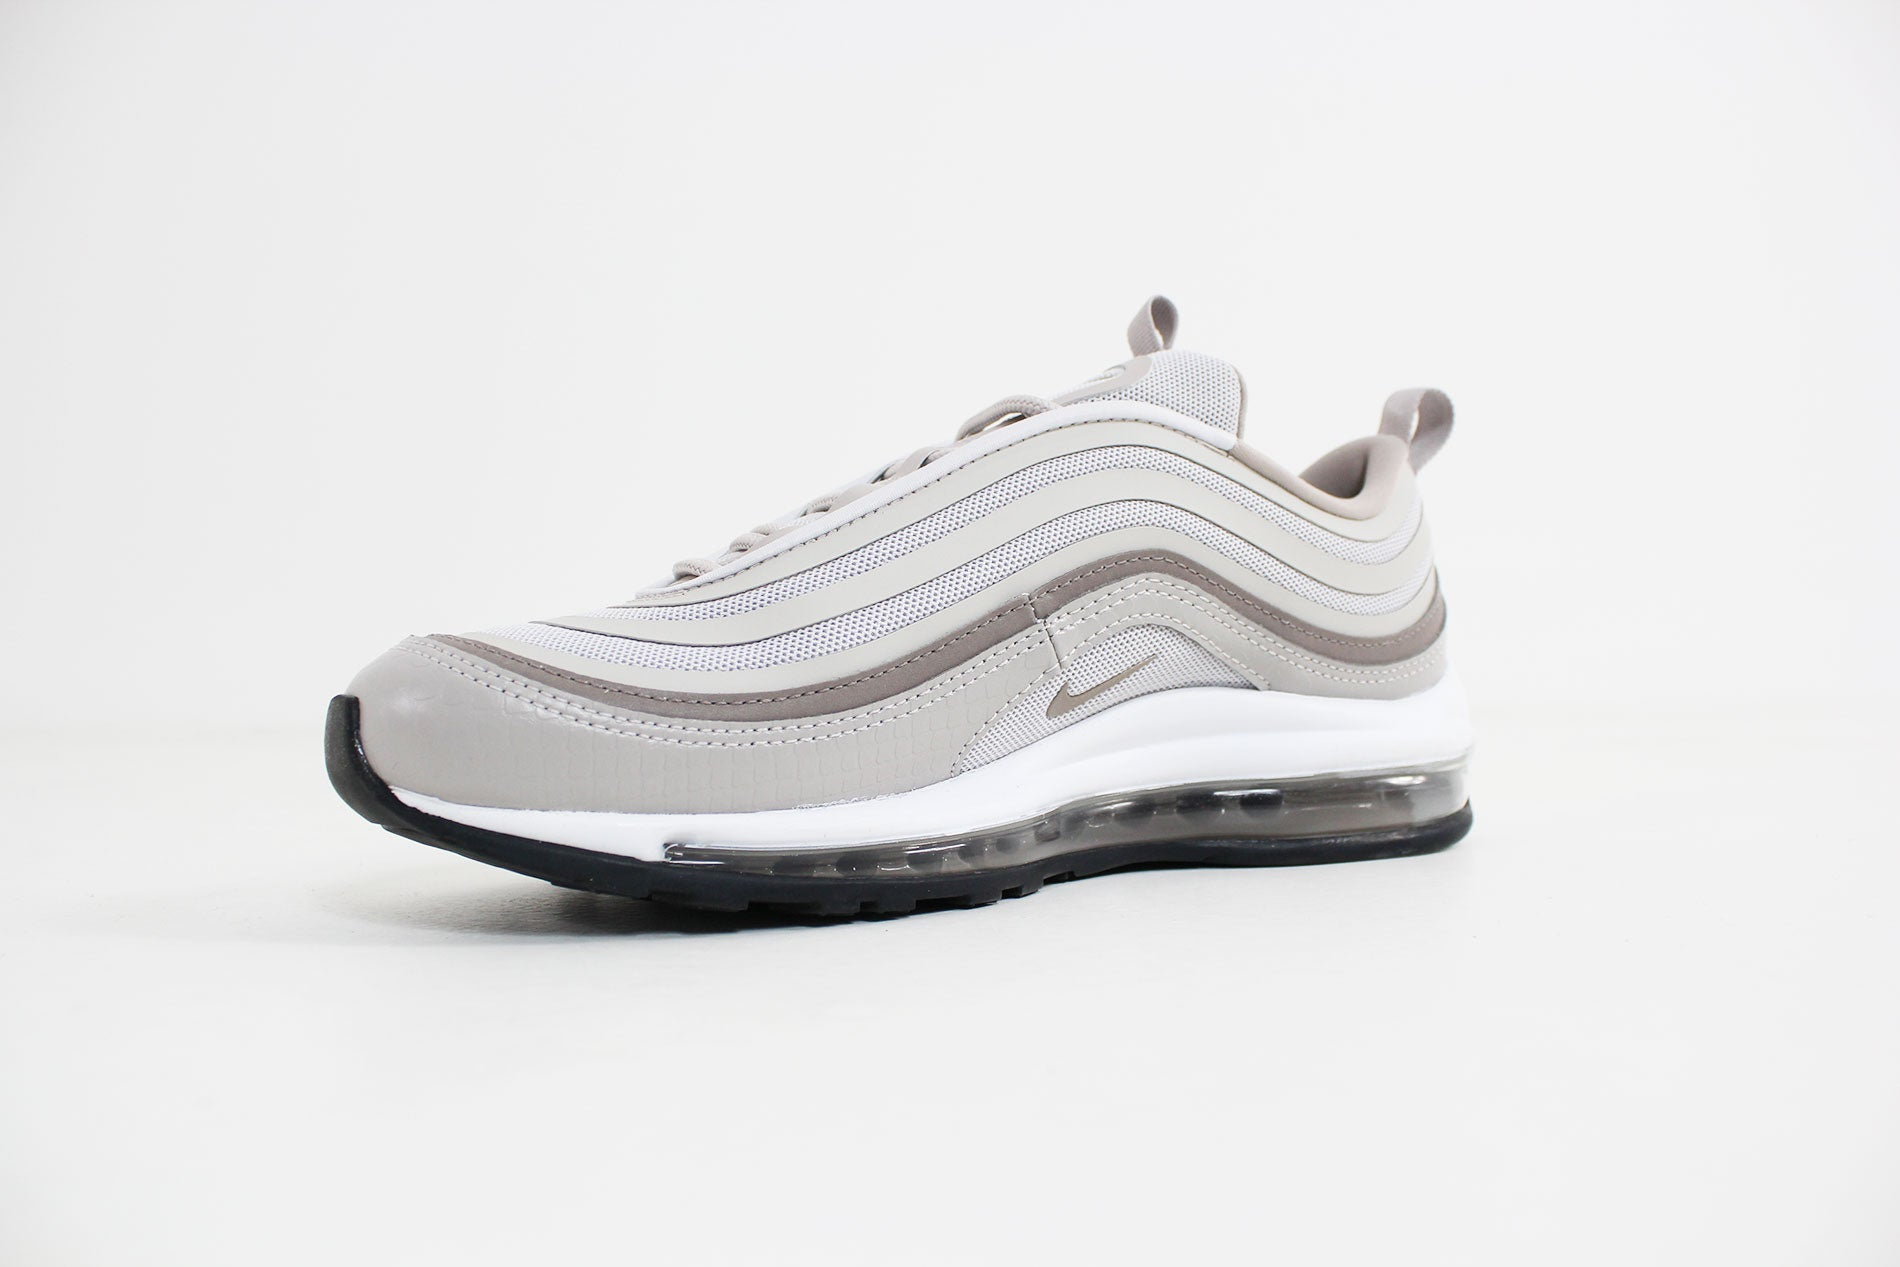 af0fe25ec496 Nike - Air Max 97 Ultra  17 Sev Women (Moon Particle  Sepia Stone -Vast  Grey) AH6806-200